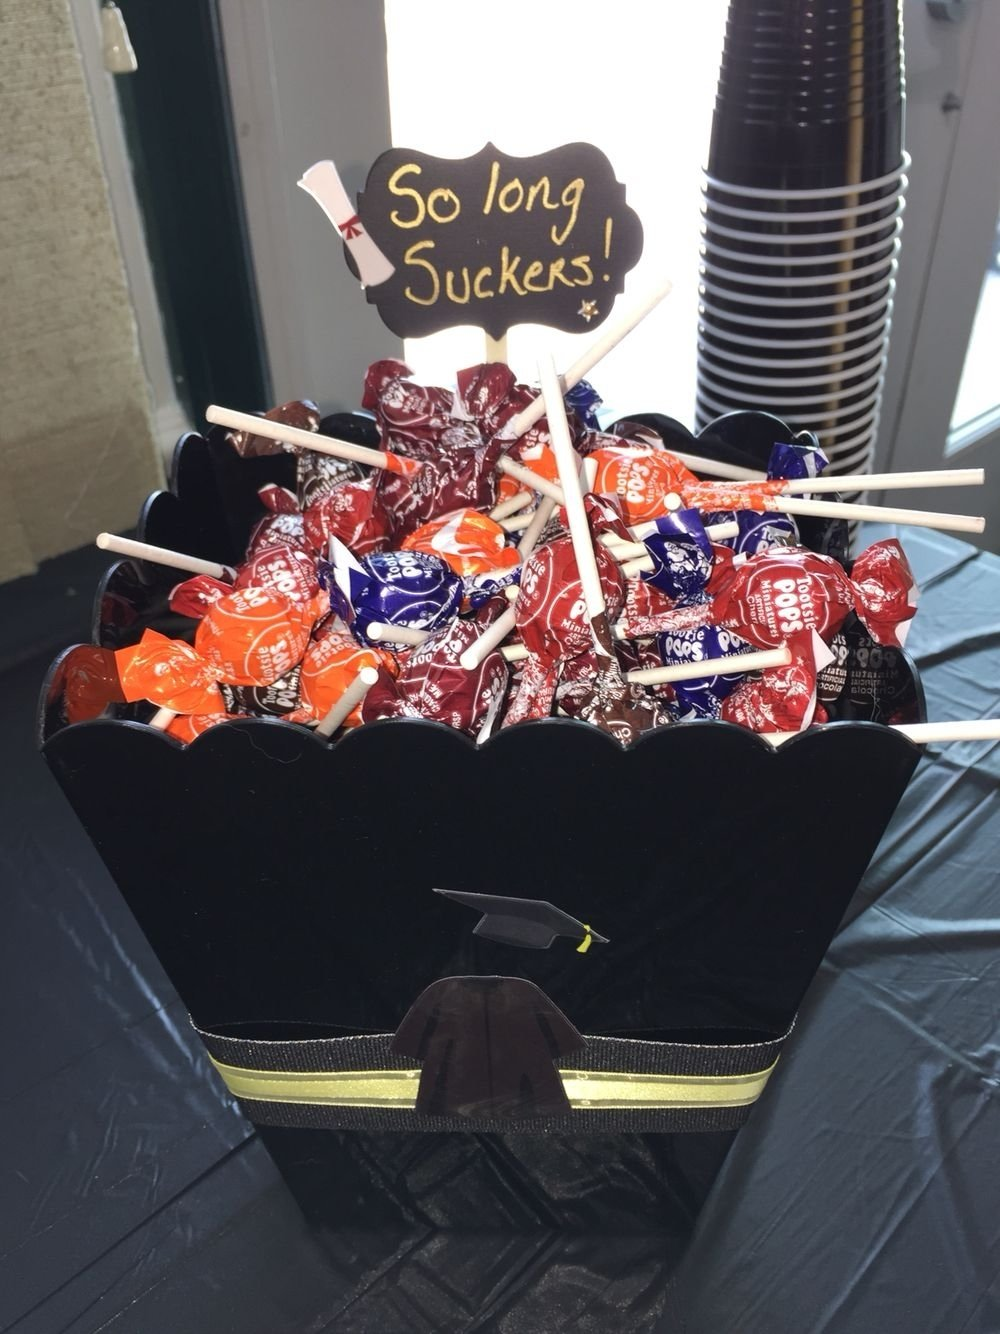 10 Great High School Graduation Party Ideas Pinterest my daughters candy bar for graduation graduation party ideas 2020